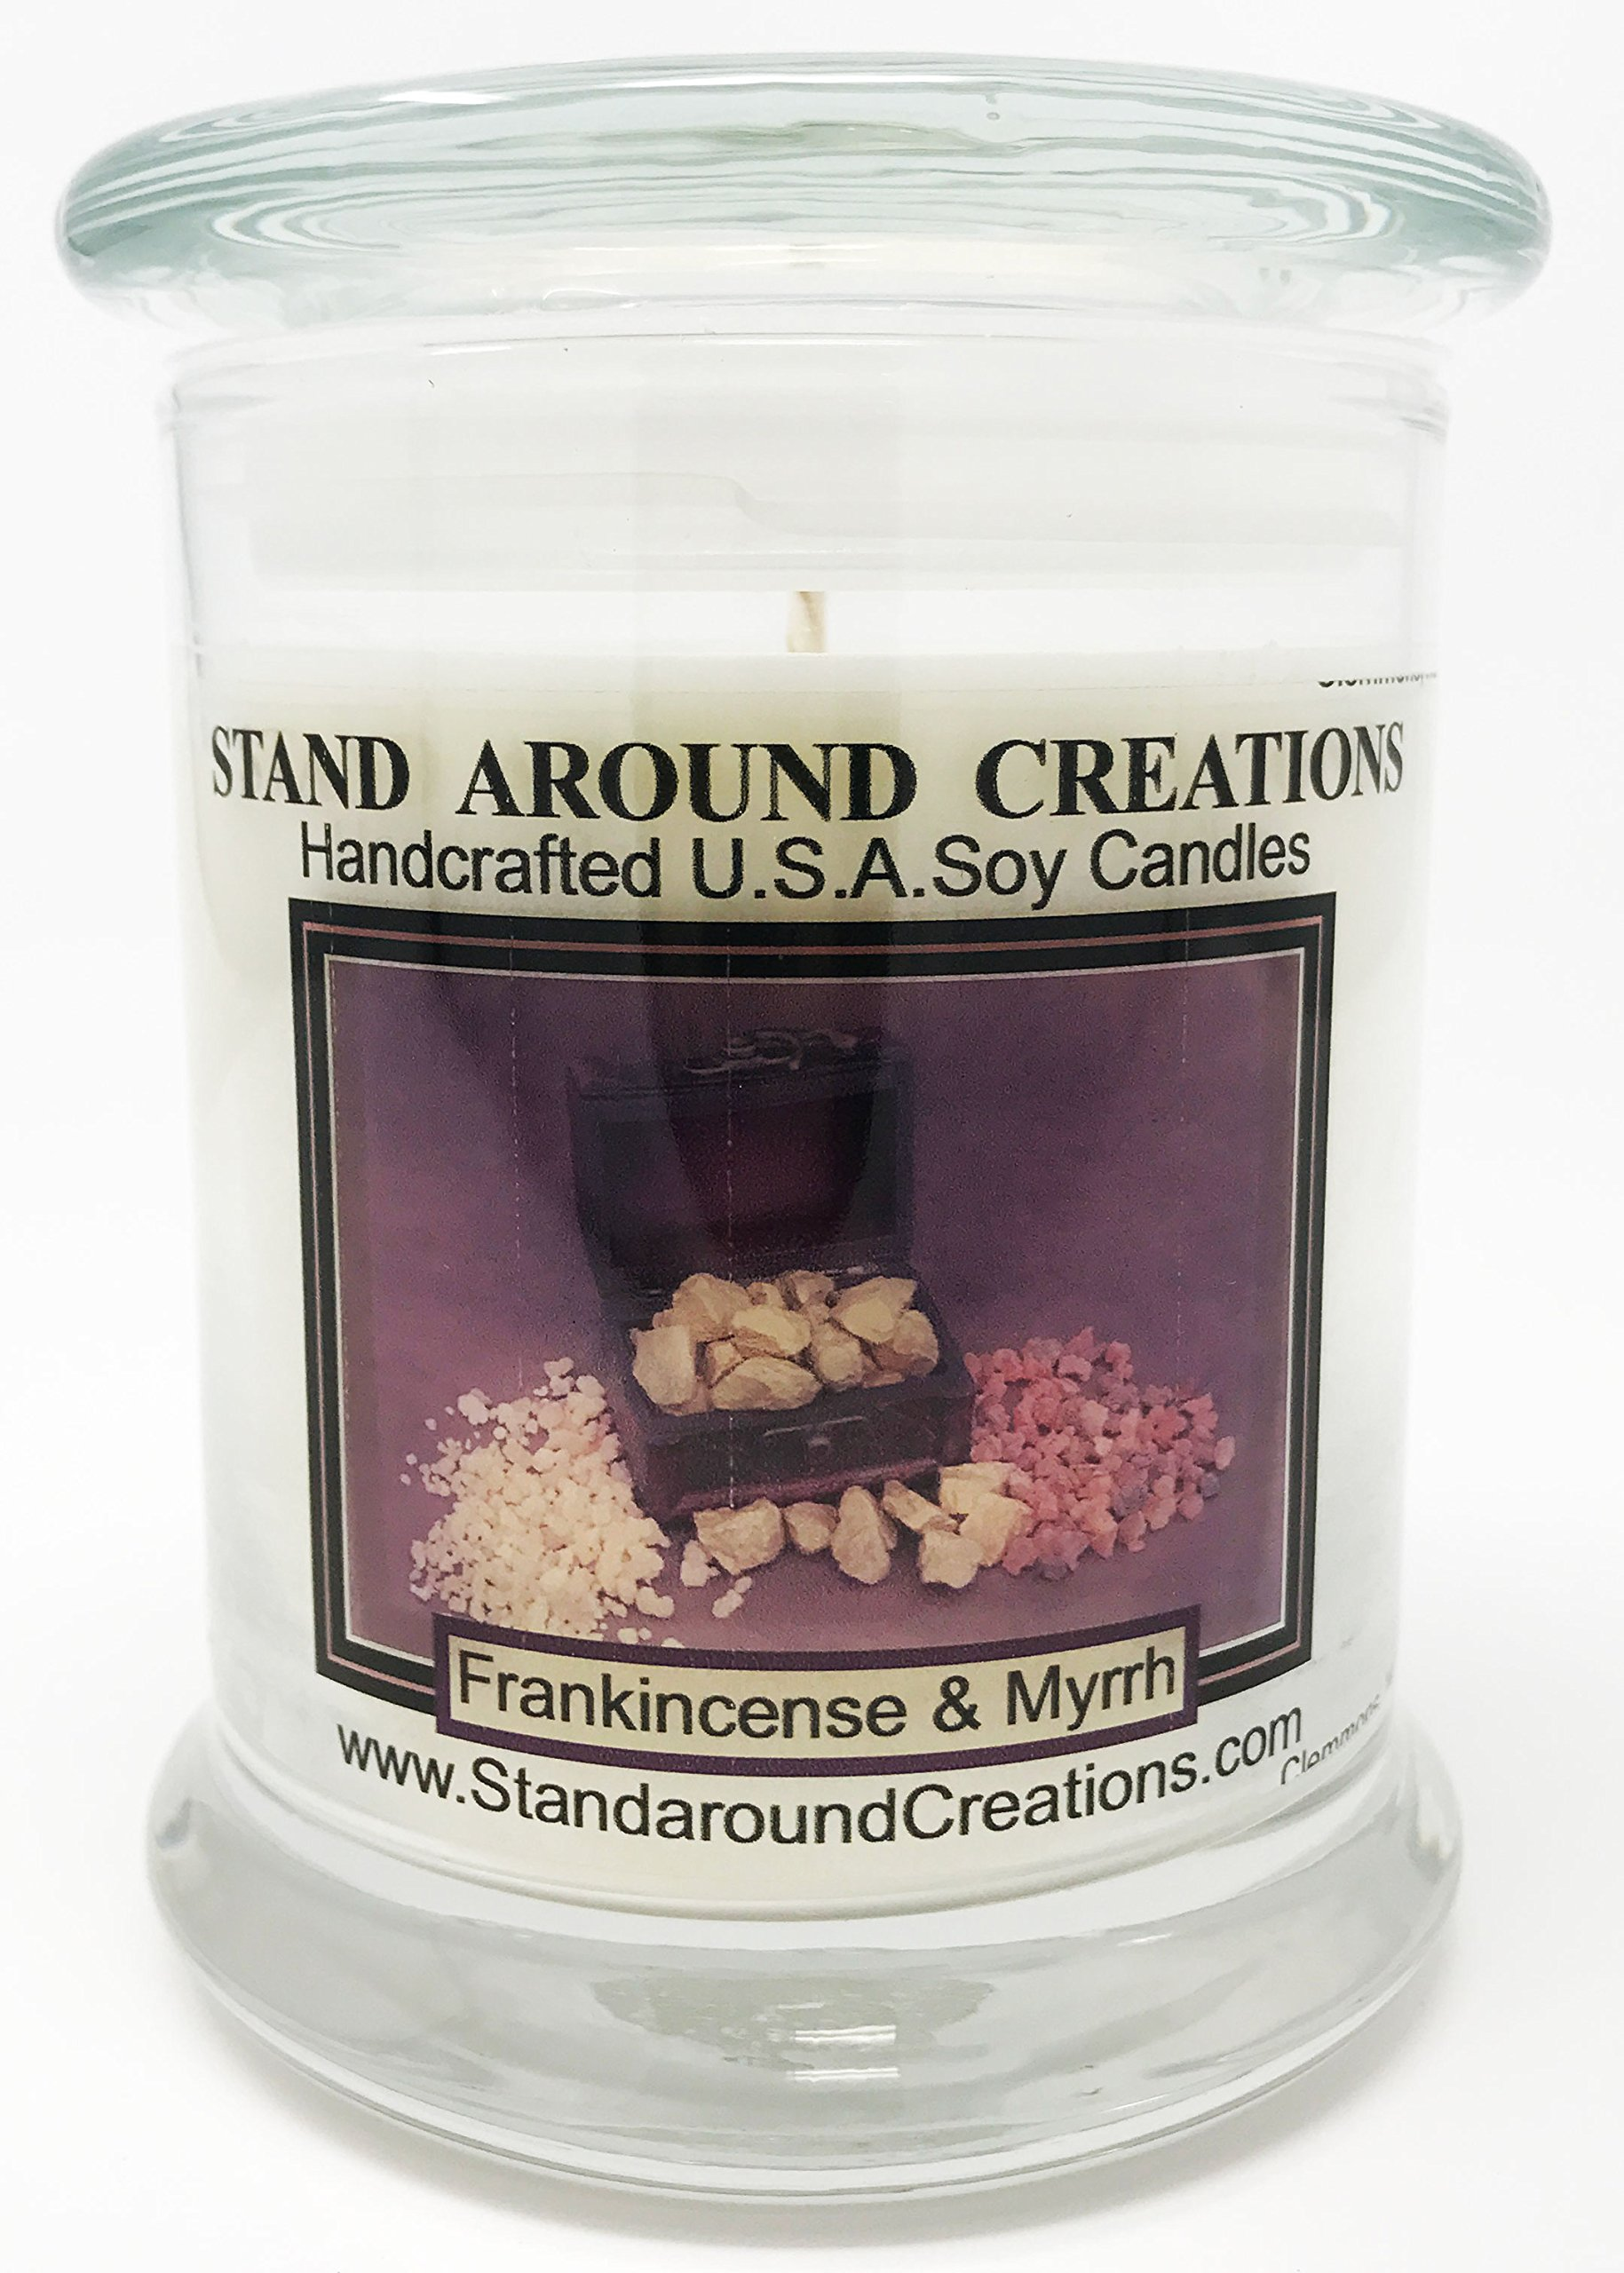 Premium 100% Soy Candle - 12 oz. Status Jar - Frankincense And Myrrh: A irresistible blend of bergamot, patchouli, sandalwood, myrrh essential oils. Naturally Strong Scented.